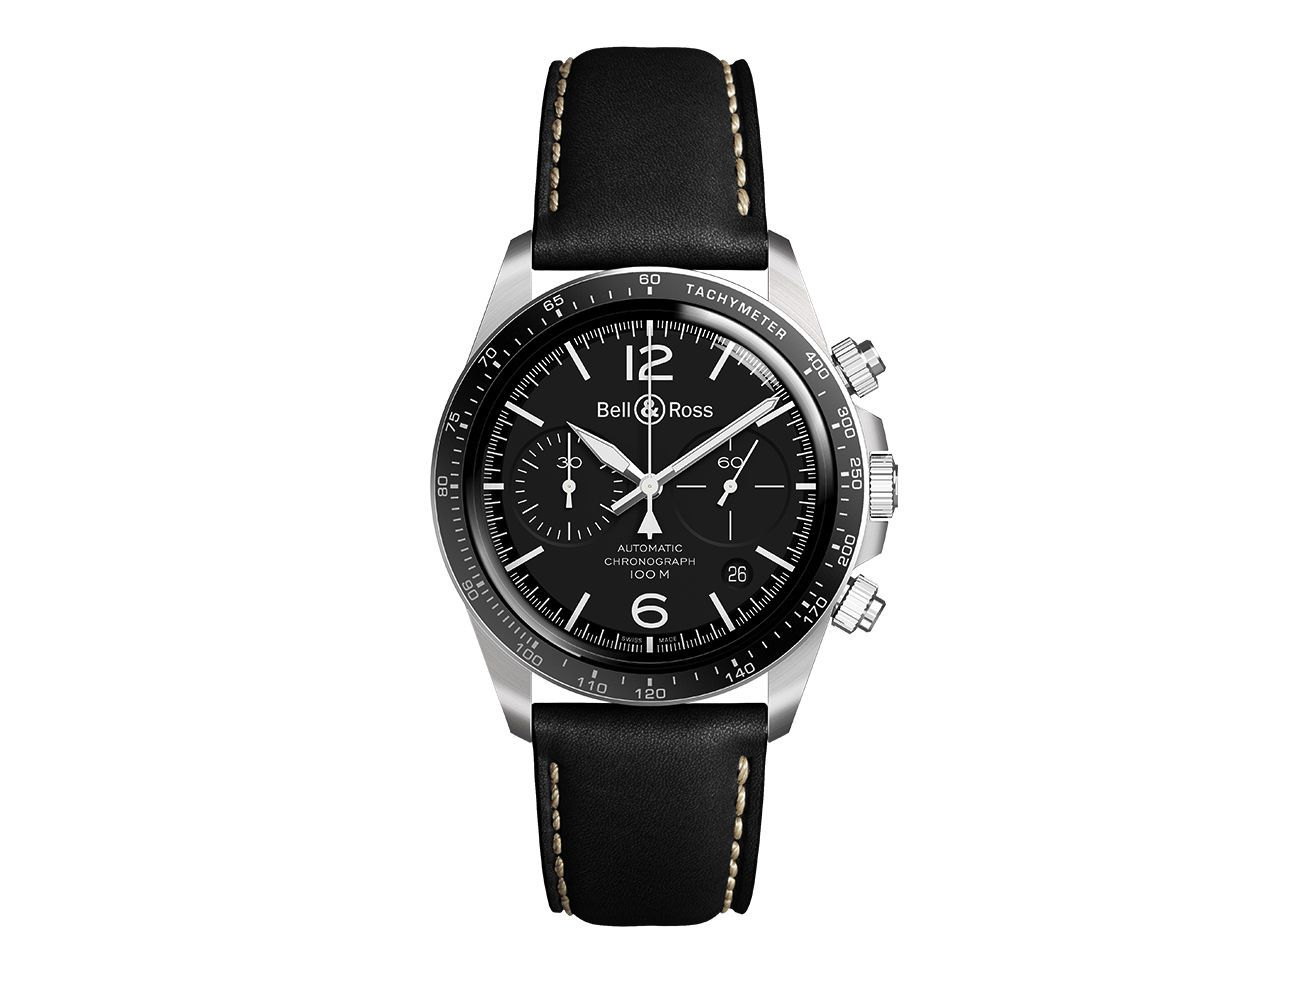 Bell & Ross BR V2-94 Automatic Chronograph Watch